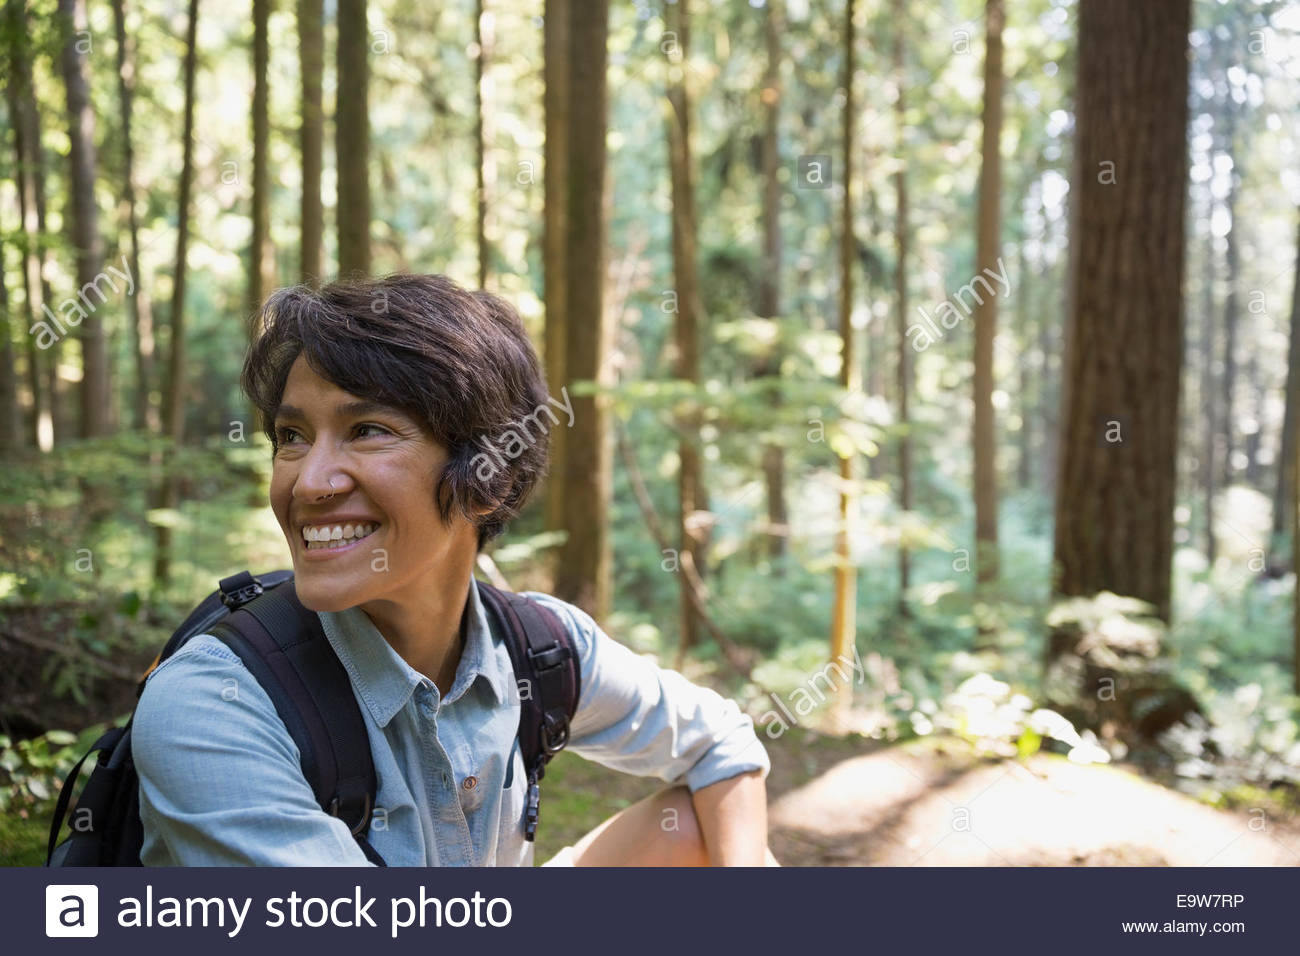 Smiling woman looking over Shoulder in woods Photo Stock